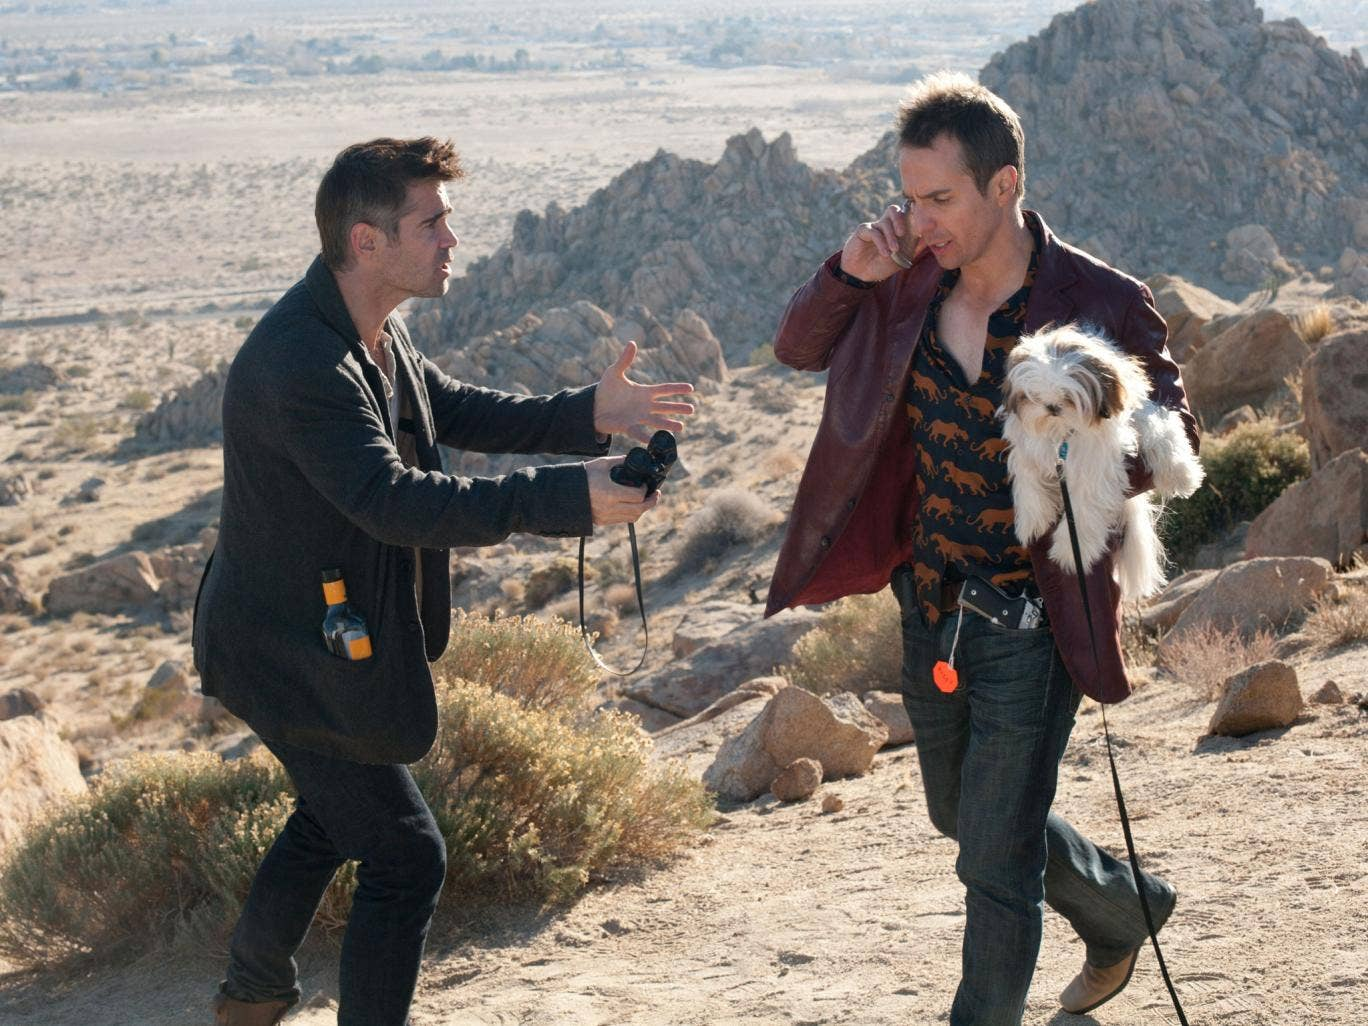 Call of the wild: Colin Farrell and Sam Rockwell in 'Seven Psychopaths'